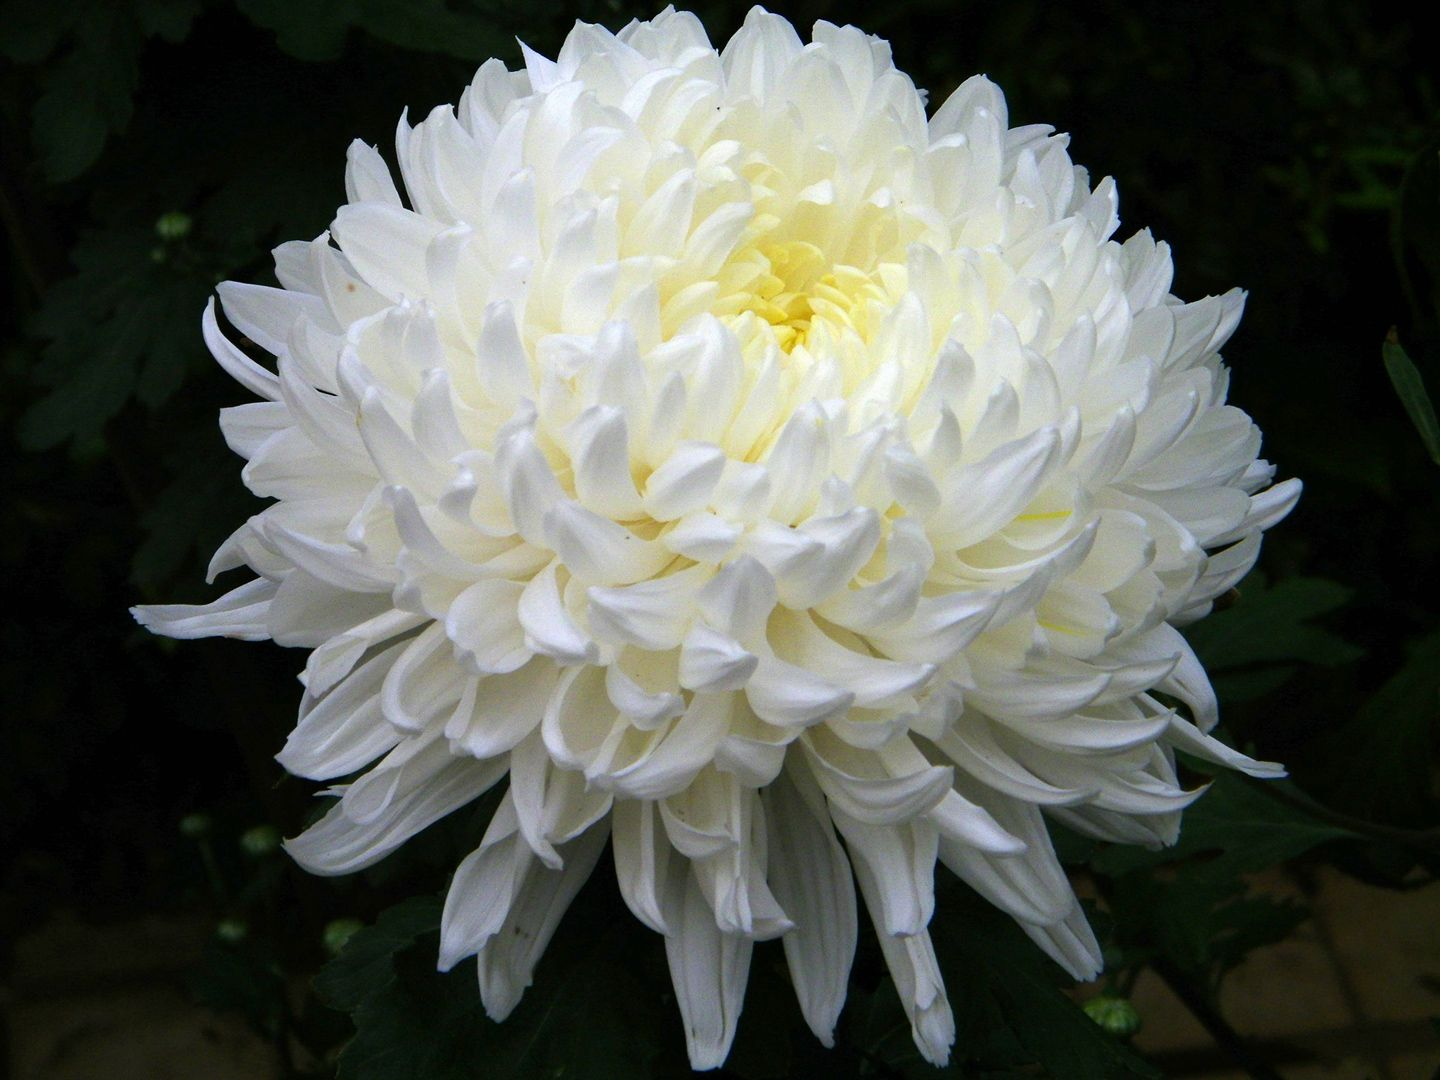 Flowers And Their Meanings White Chrysanthemum Chrysanthemum Chrysanthemum Flower